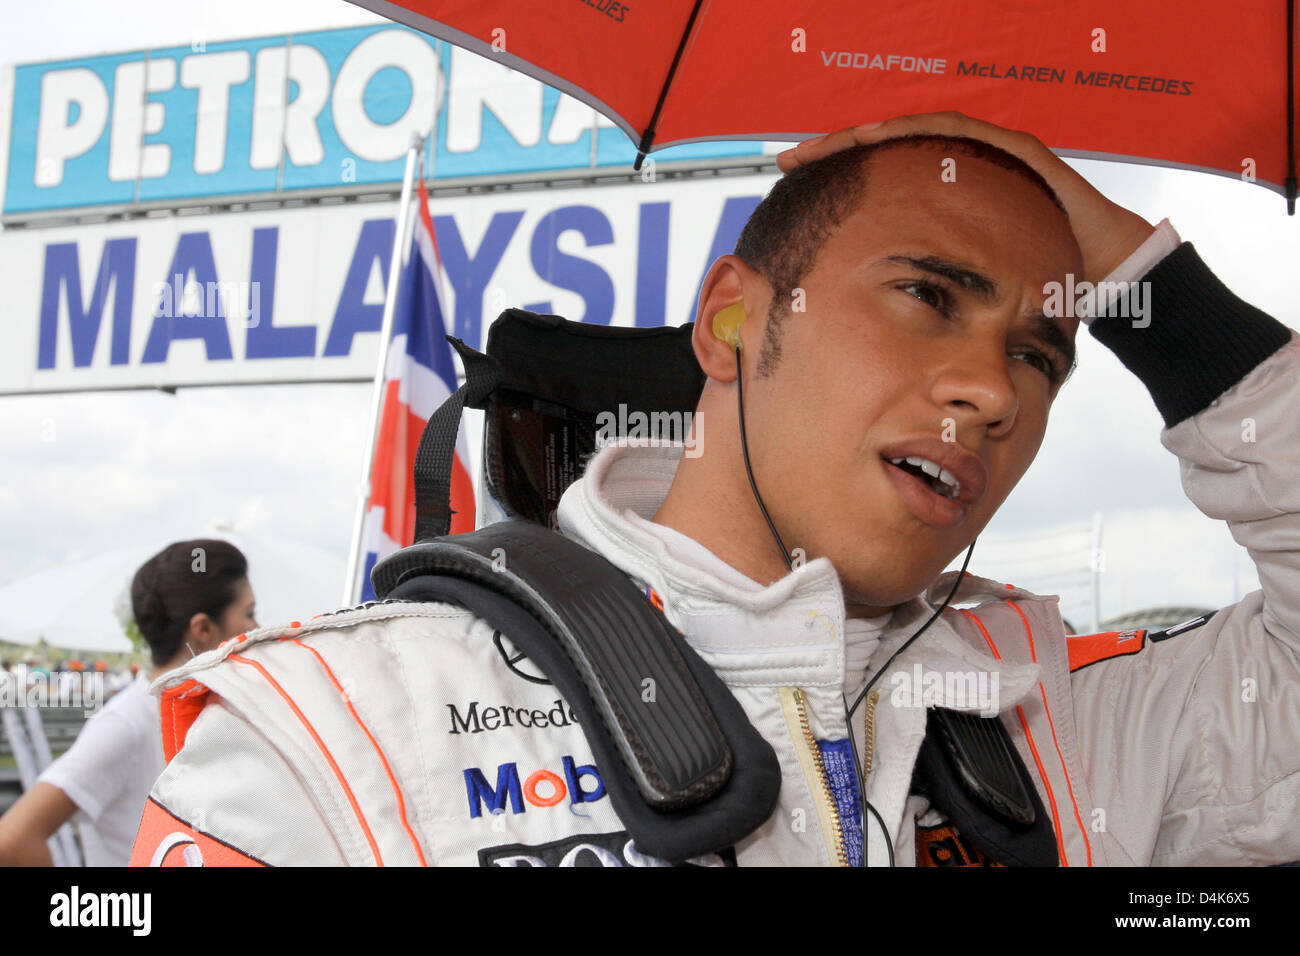 British Formula One driver Lewis Hamilton of McLaren Mercedes gestures in the grid before the start of the Malaysian Stock Photo